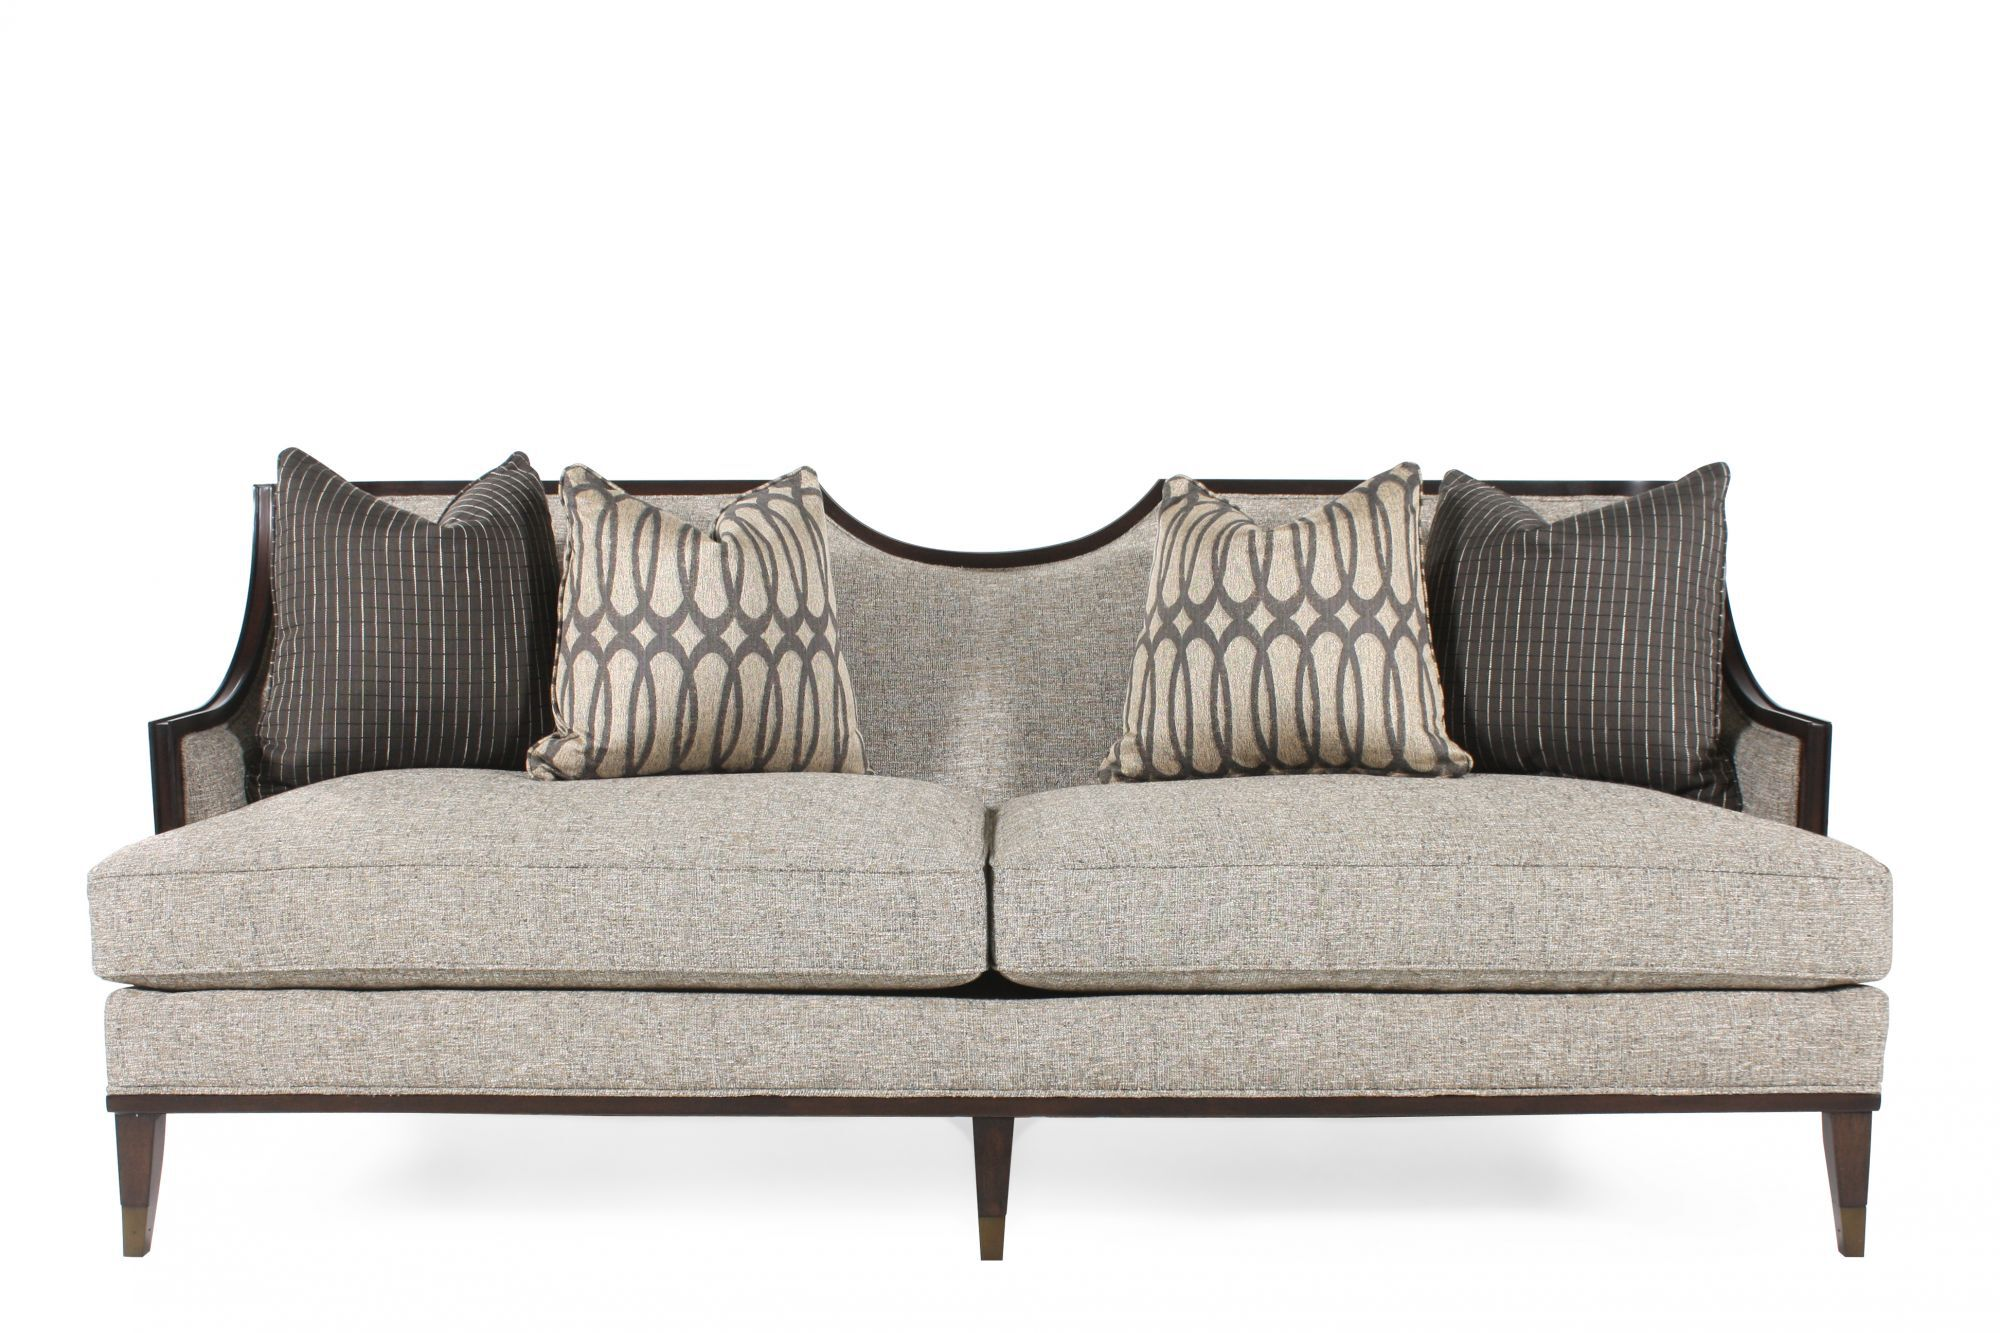 bernhardt cantor leather sofa price theatre sofas & couches | mathis brothers furniture stores